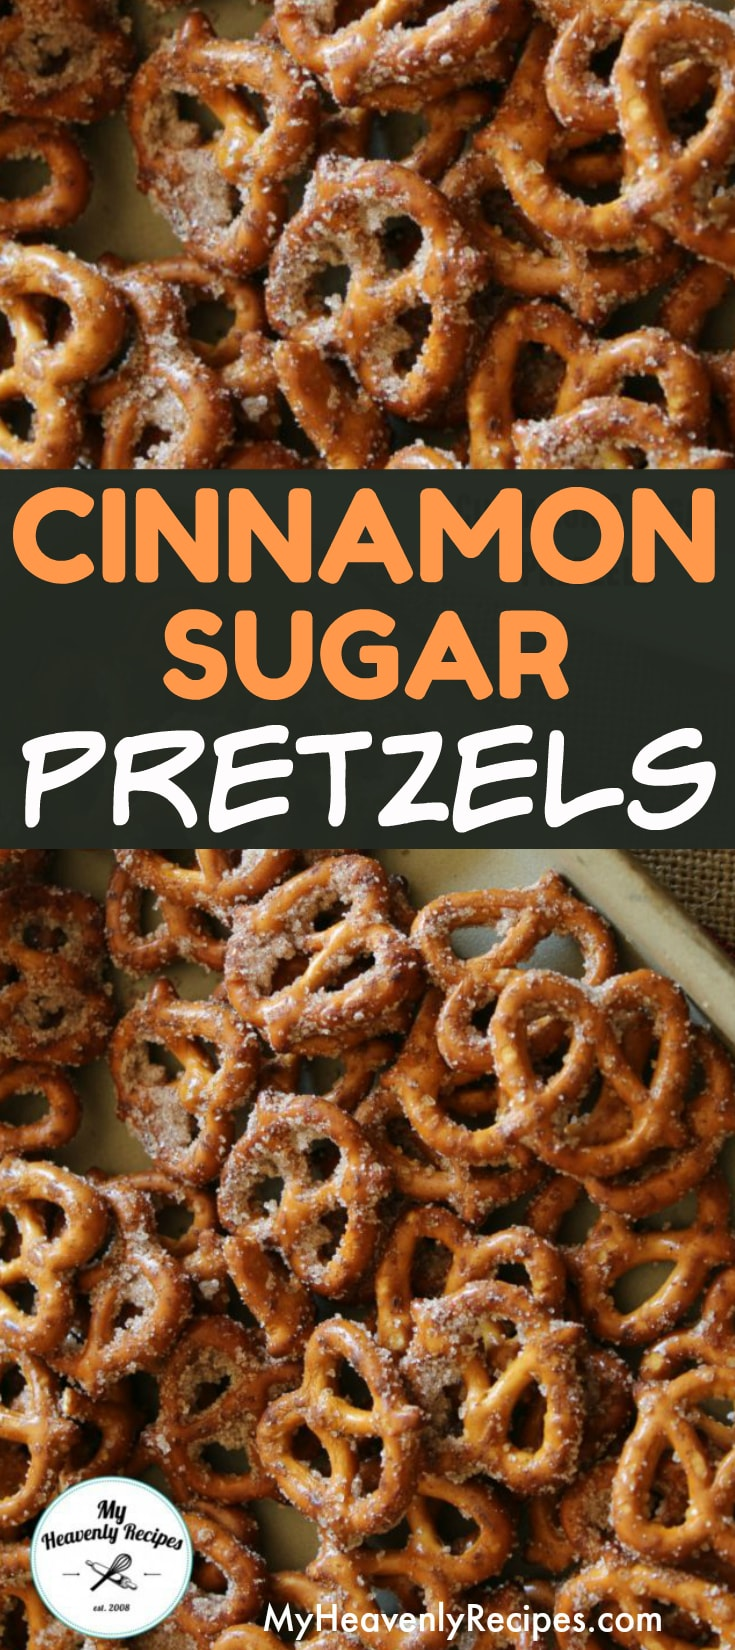 Cinnamon Sugar Pretzels - A Quick and Easy Snack that will feed a crowd on a budget. These seasoned pretzels also make a wonderful gift! #snackrecipes #snacks #pretzels #budgetrecipes